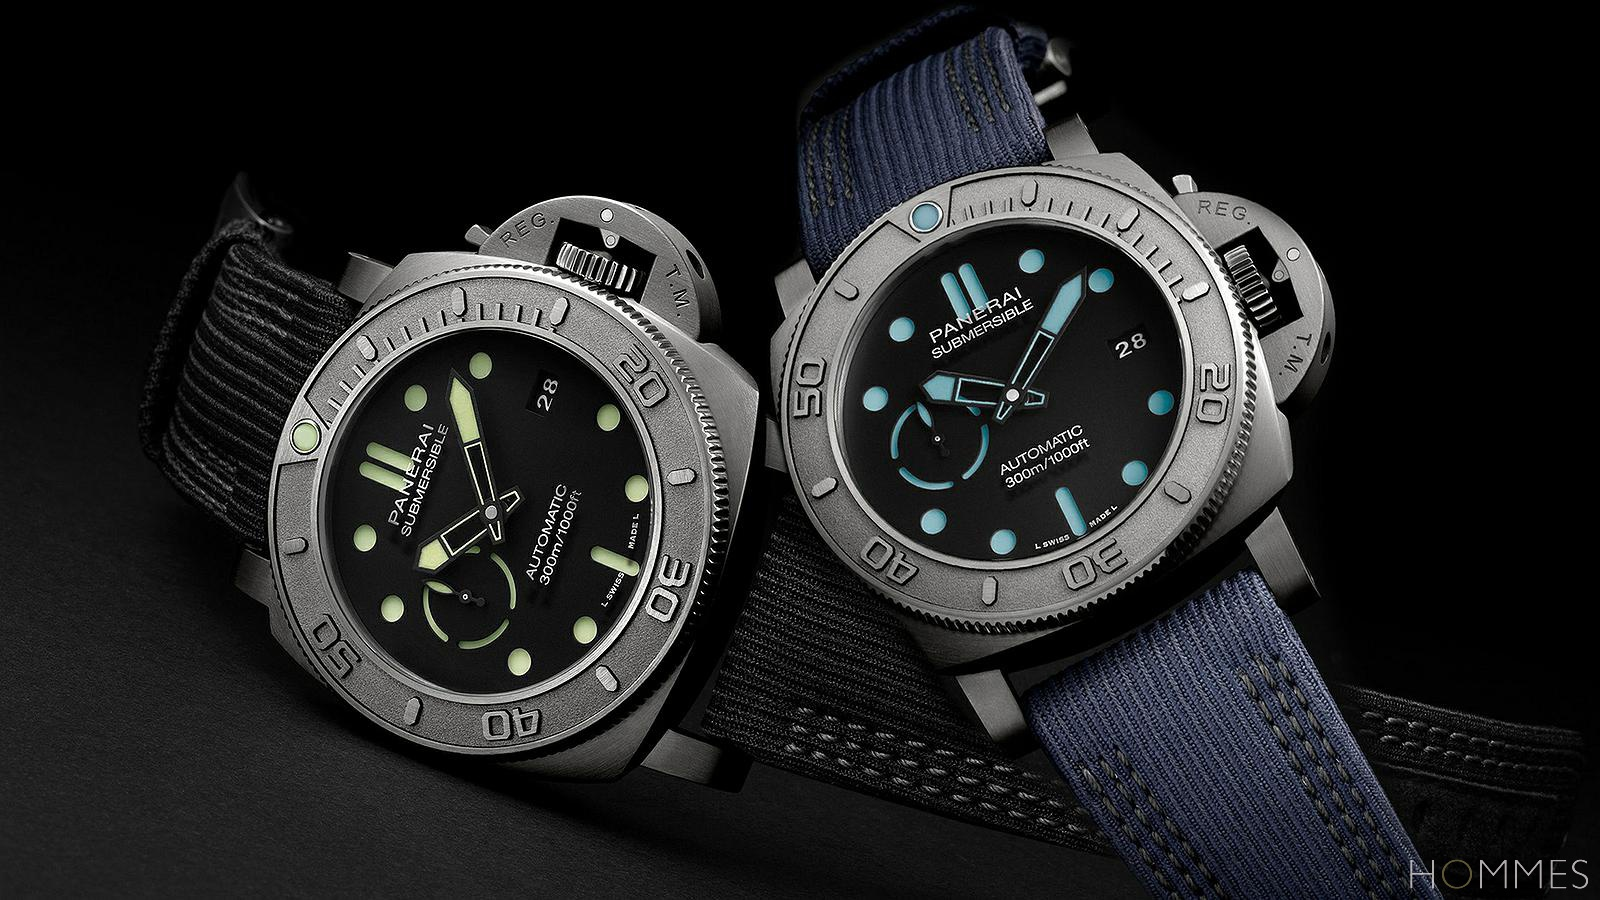 panerai-submersible-mike-horn-edition-47mm-7362.jpg